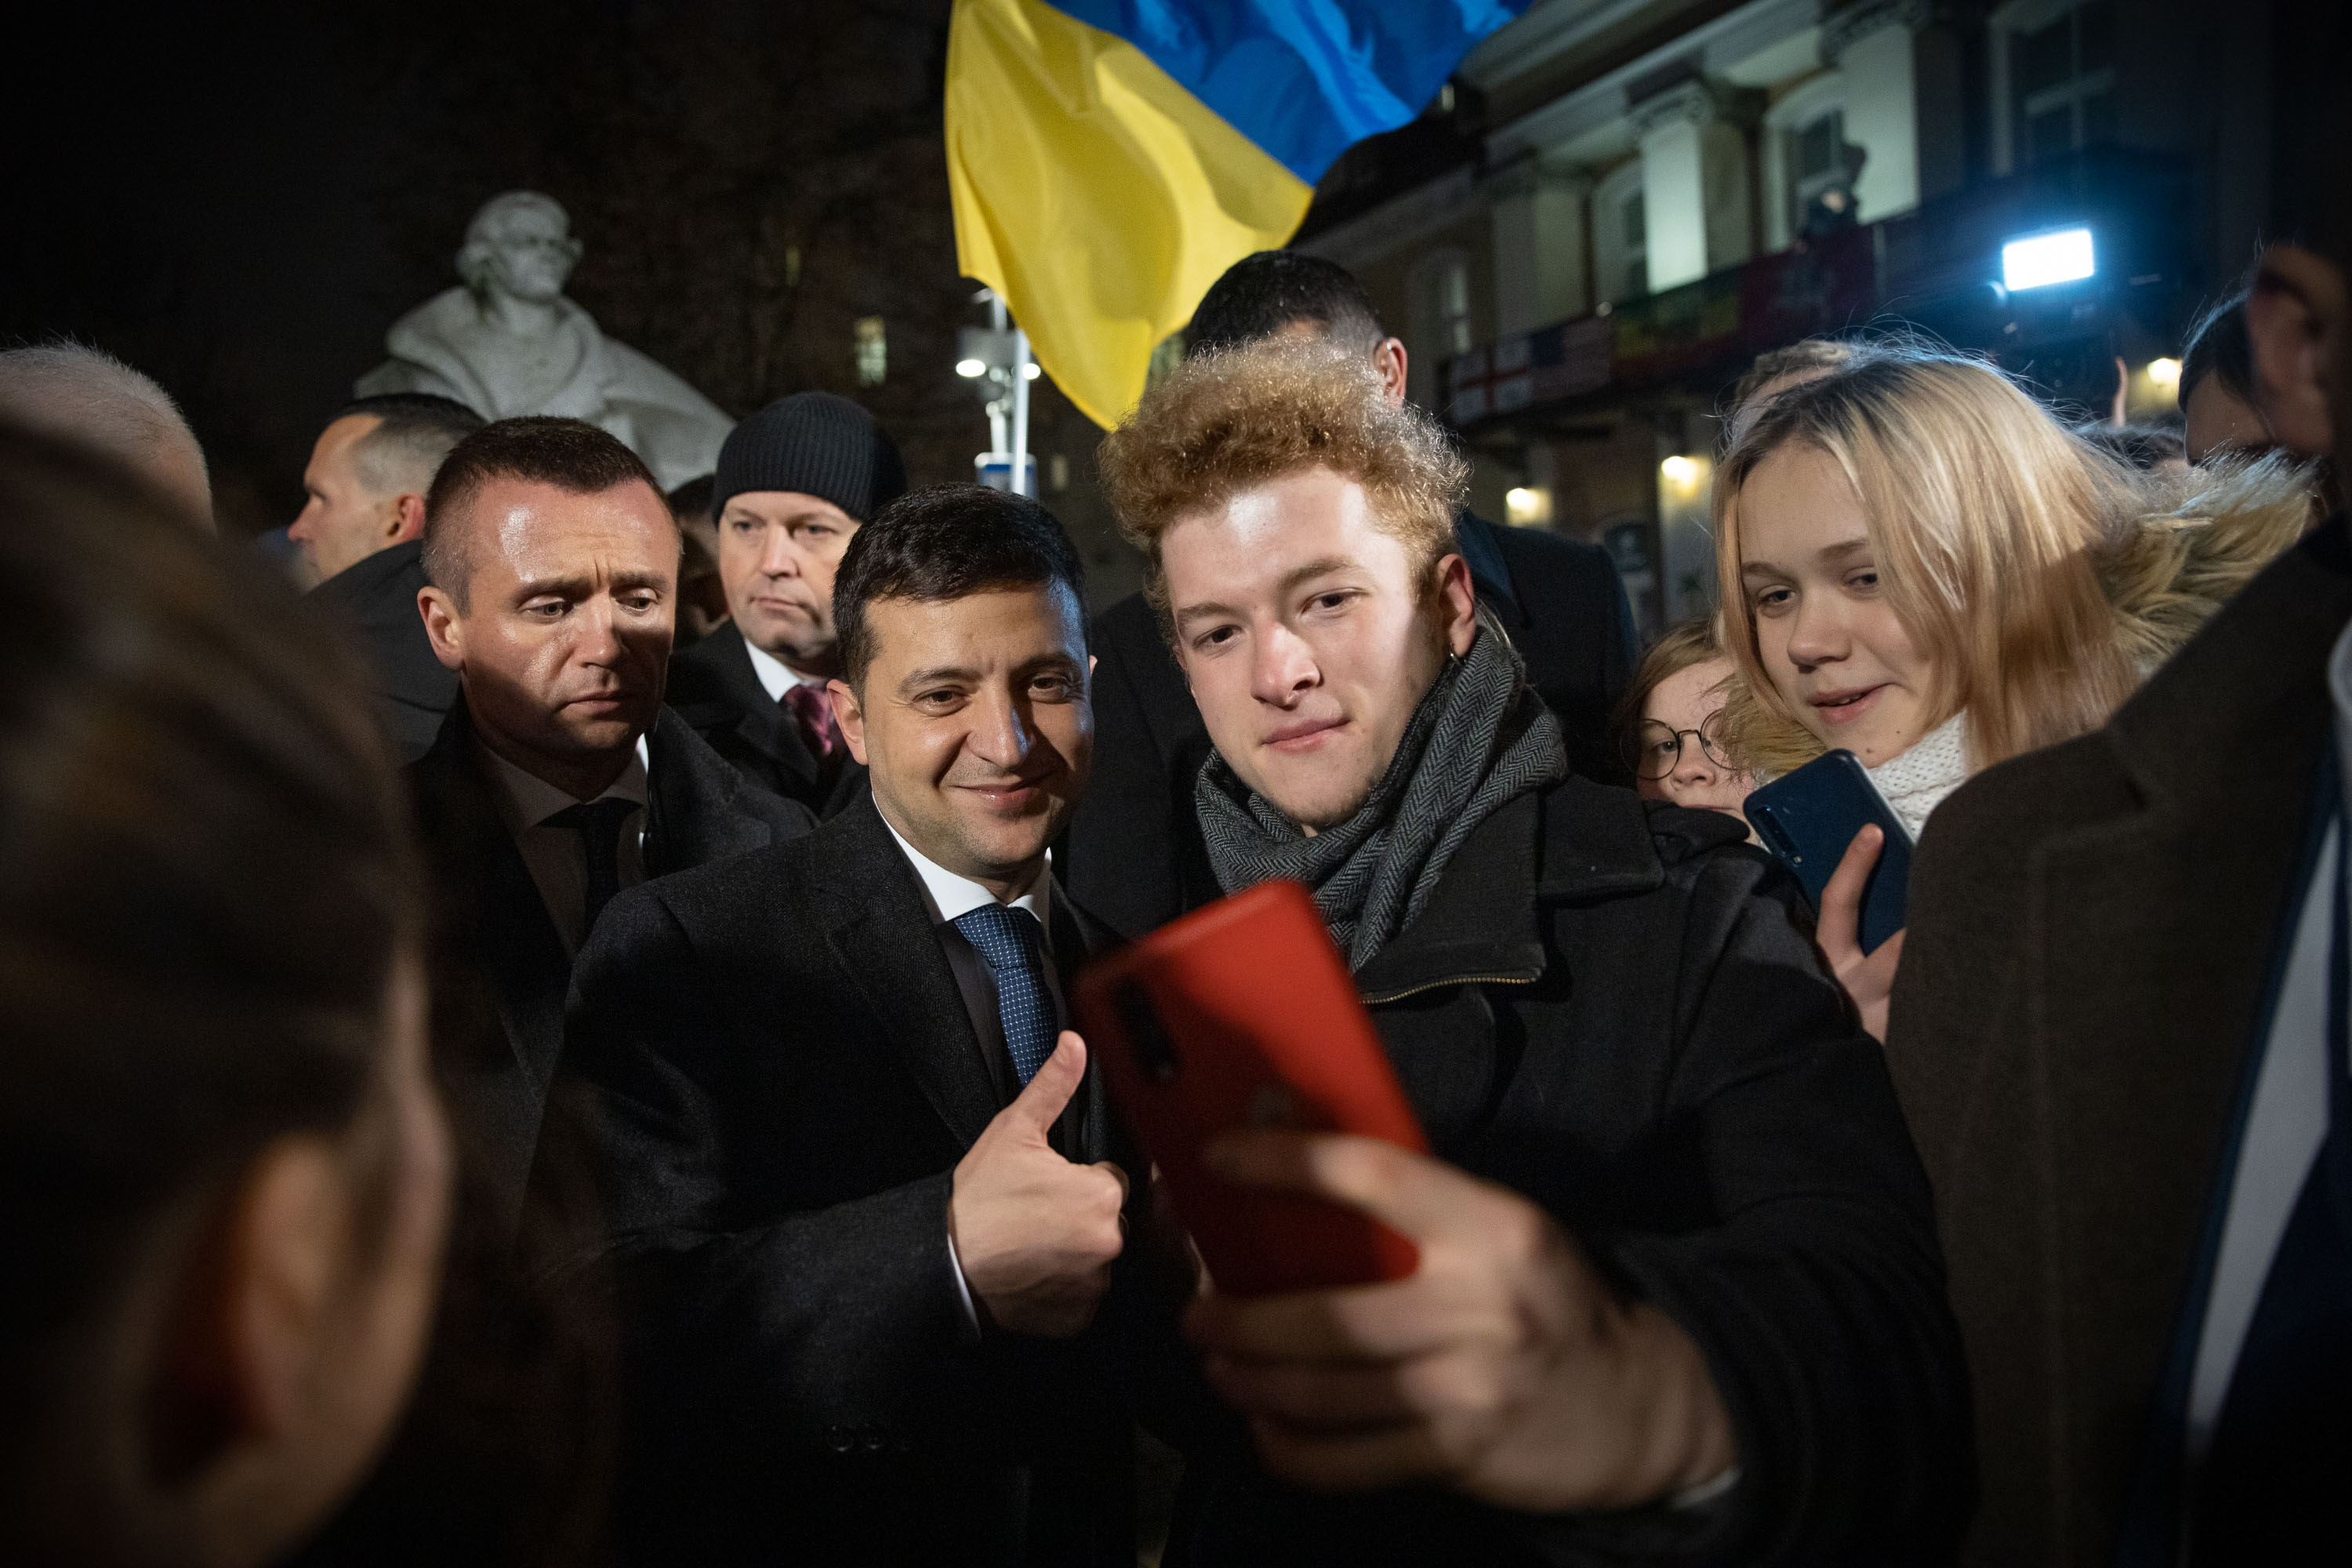 The Year of Zelensky: Ukrainians Are Becoming More Optimistic